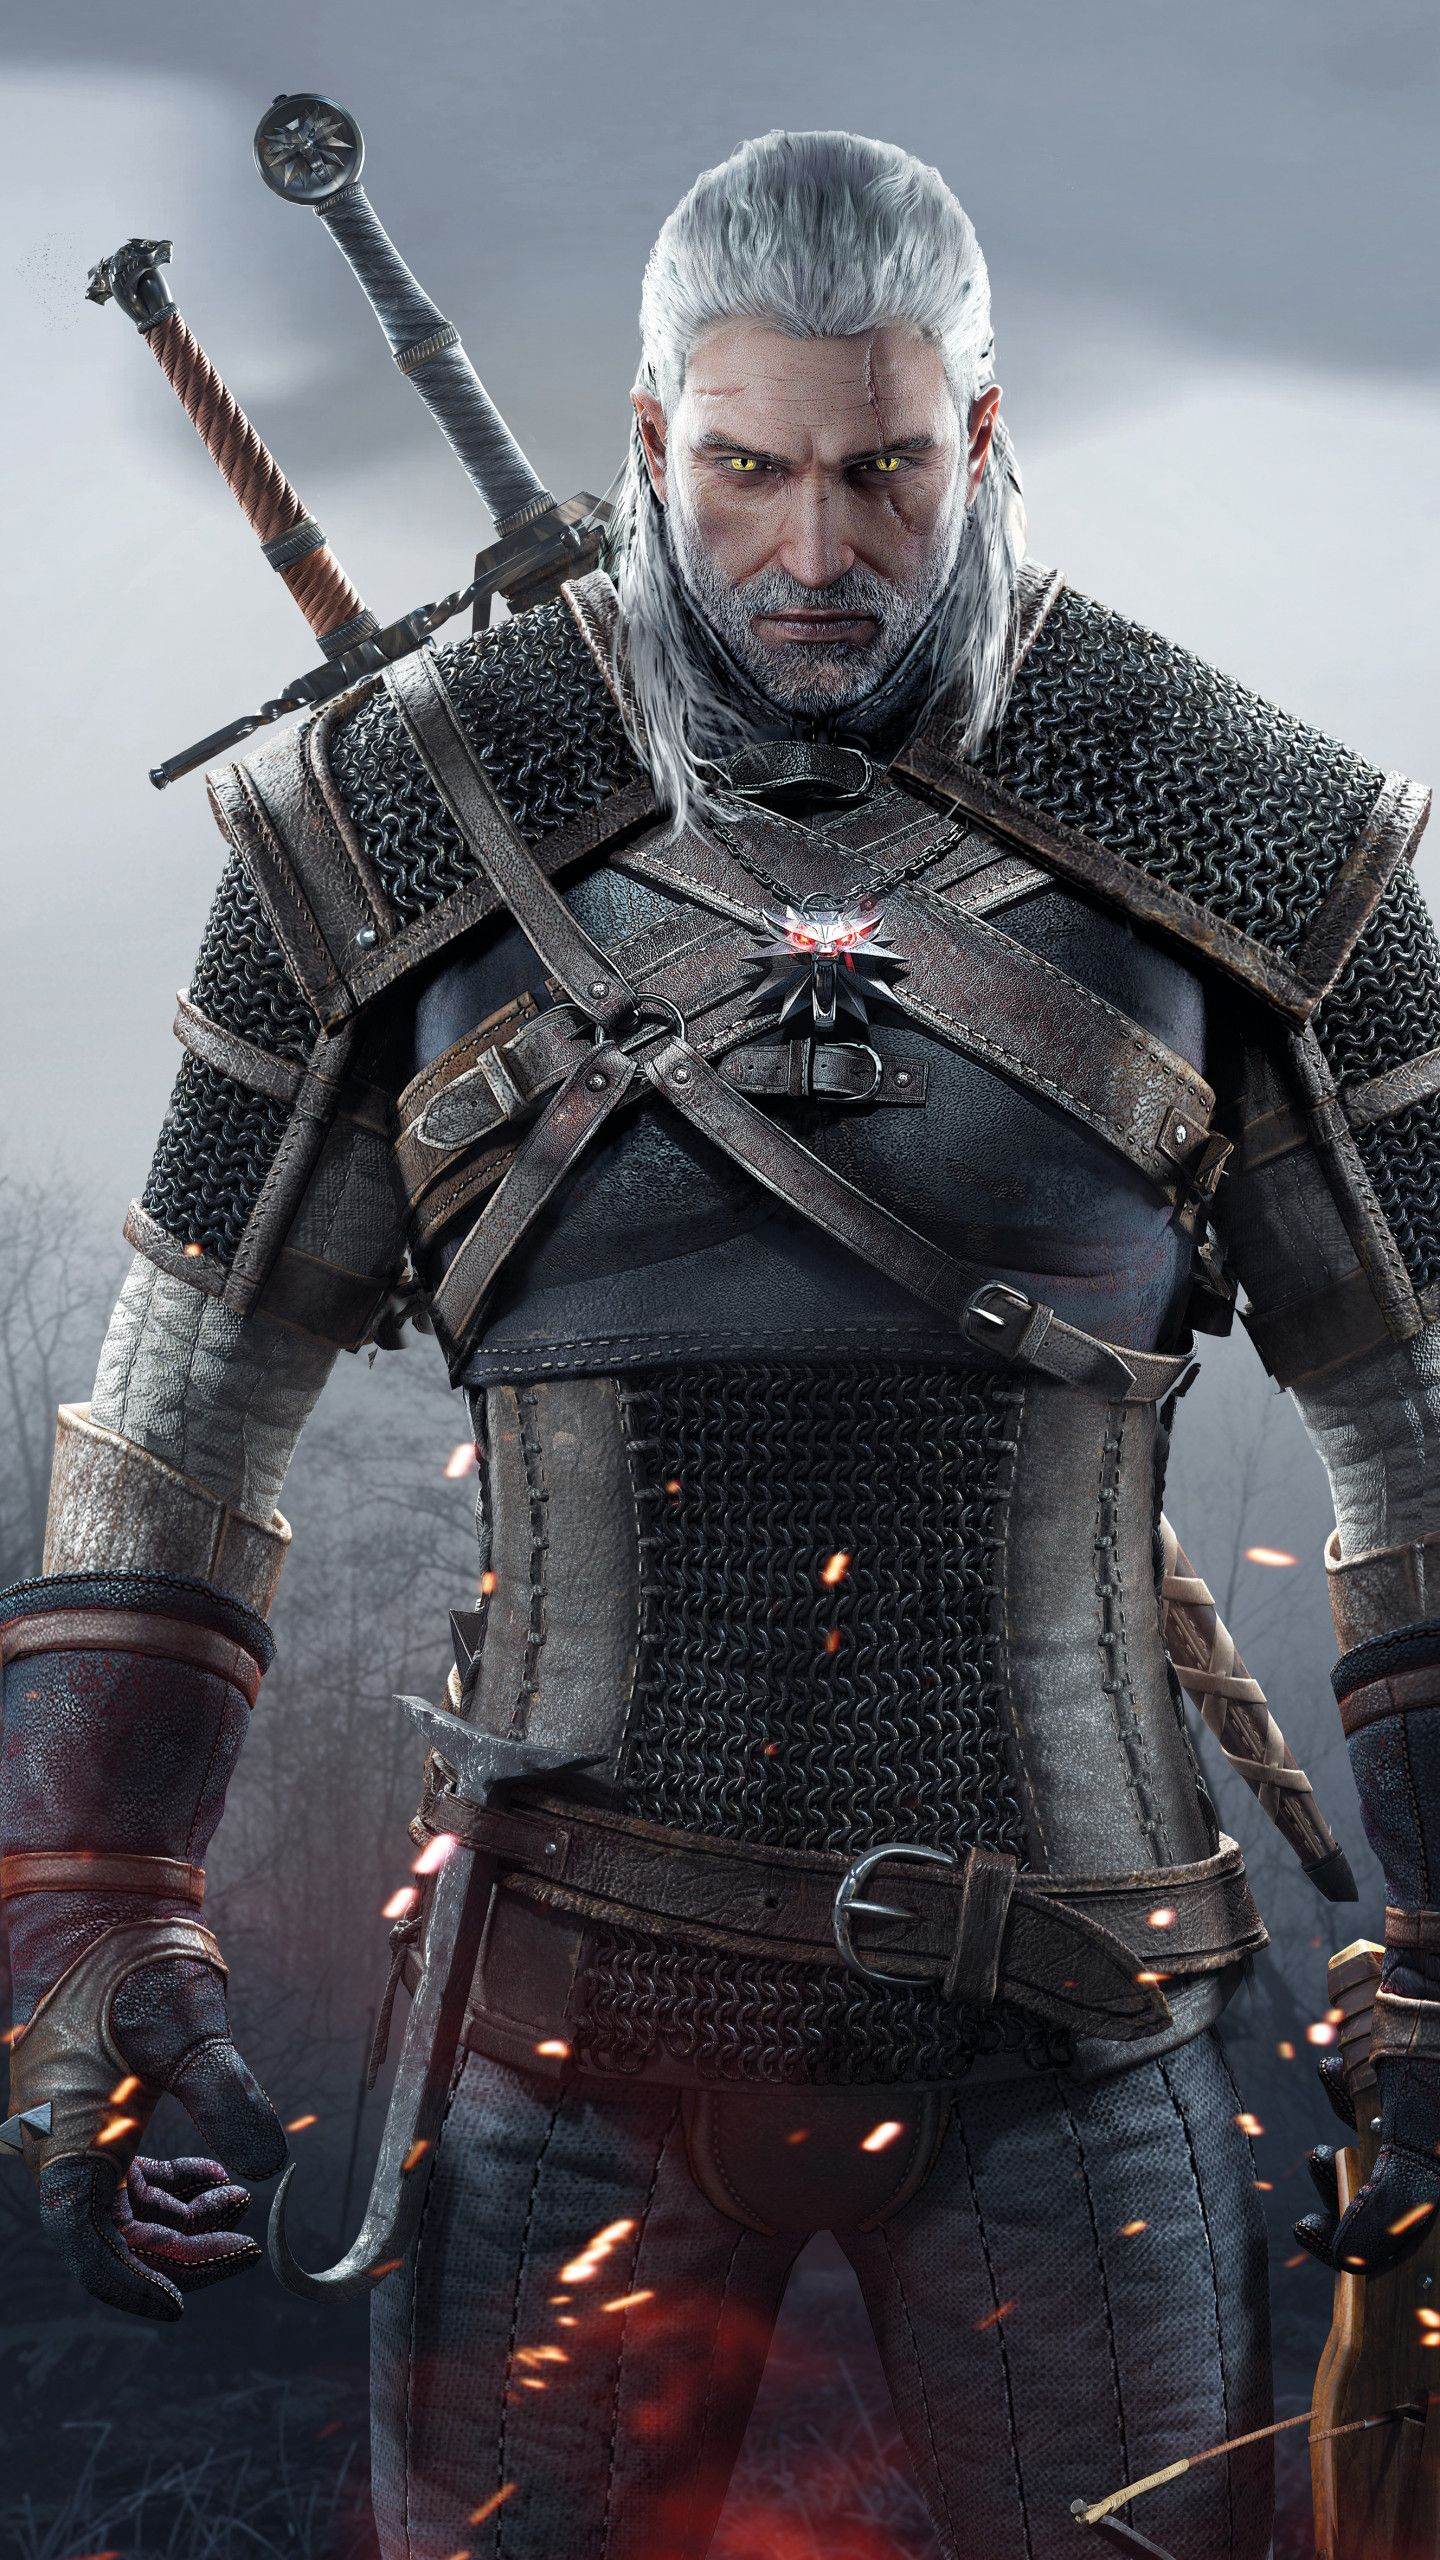 The Witcher 3 Wallpaper Hd Iphone in 2020 The witcher